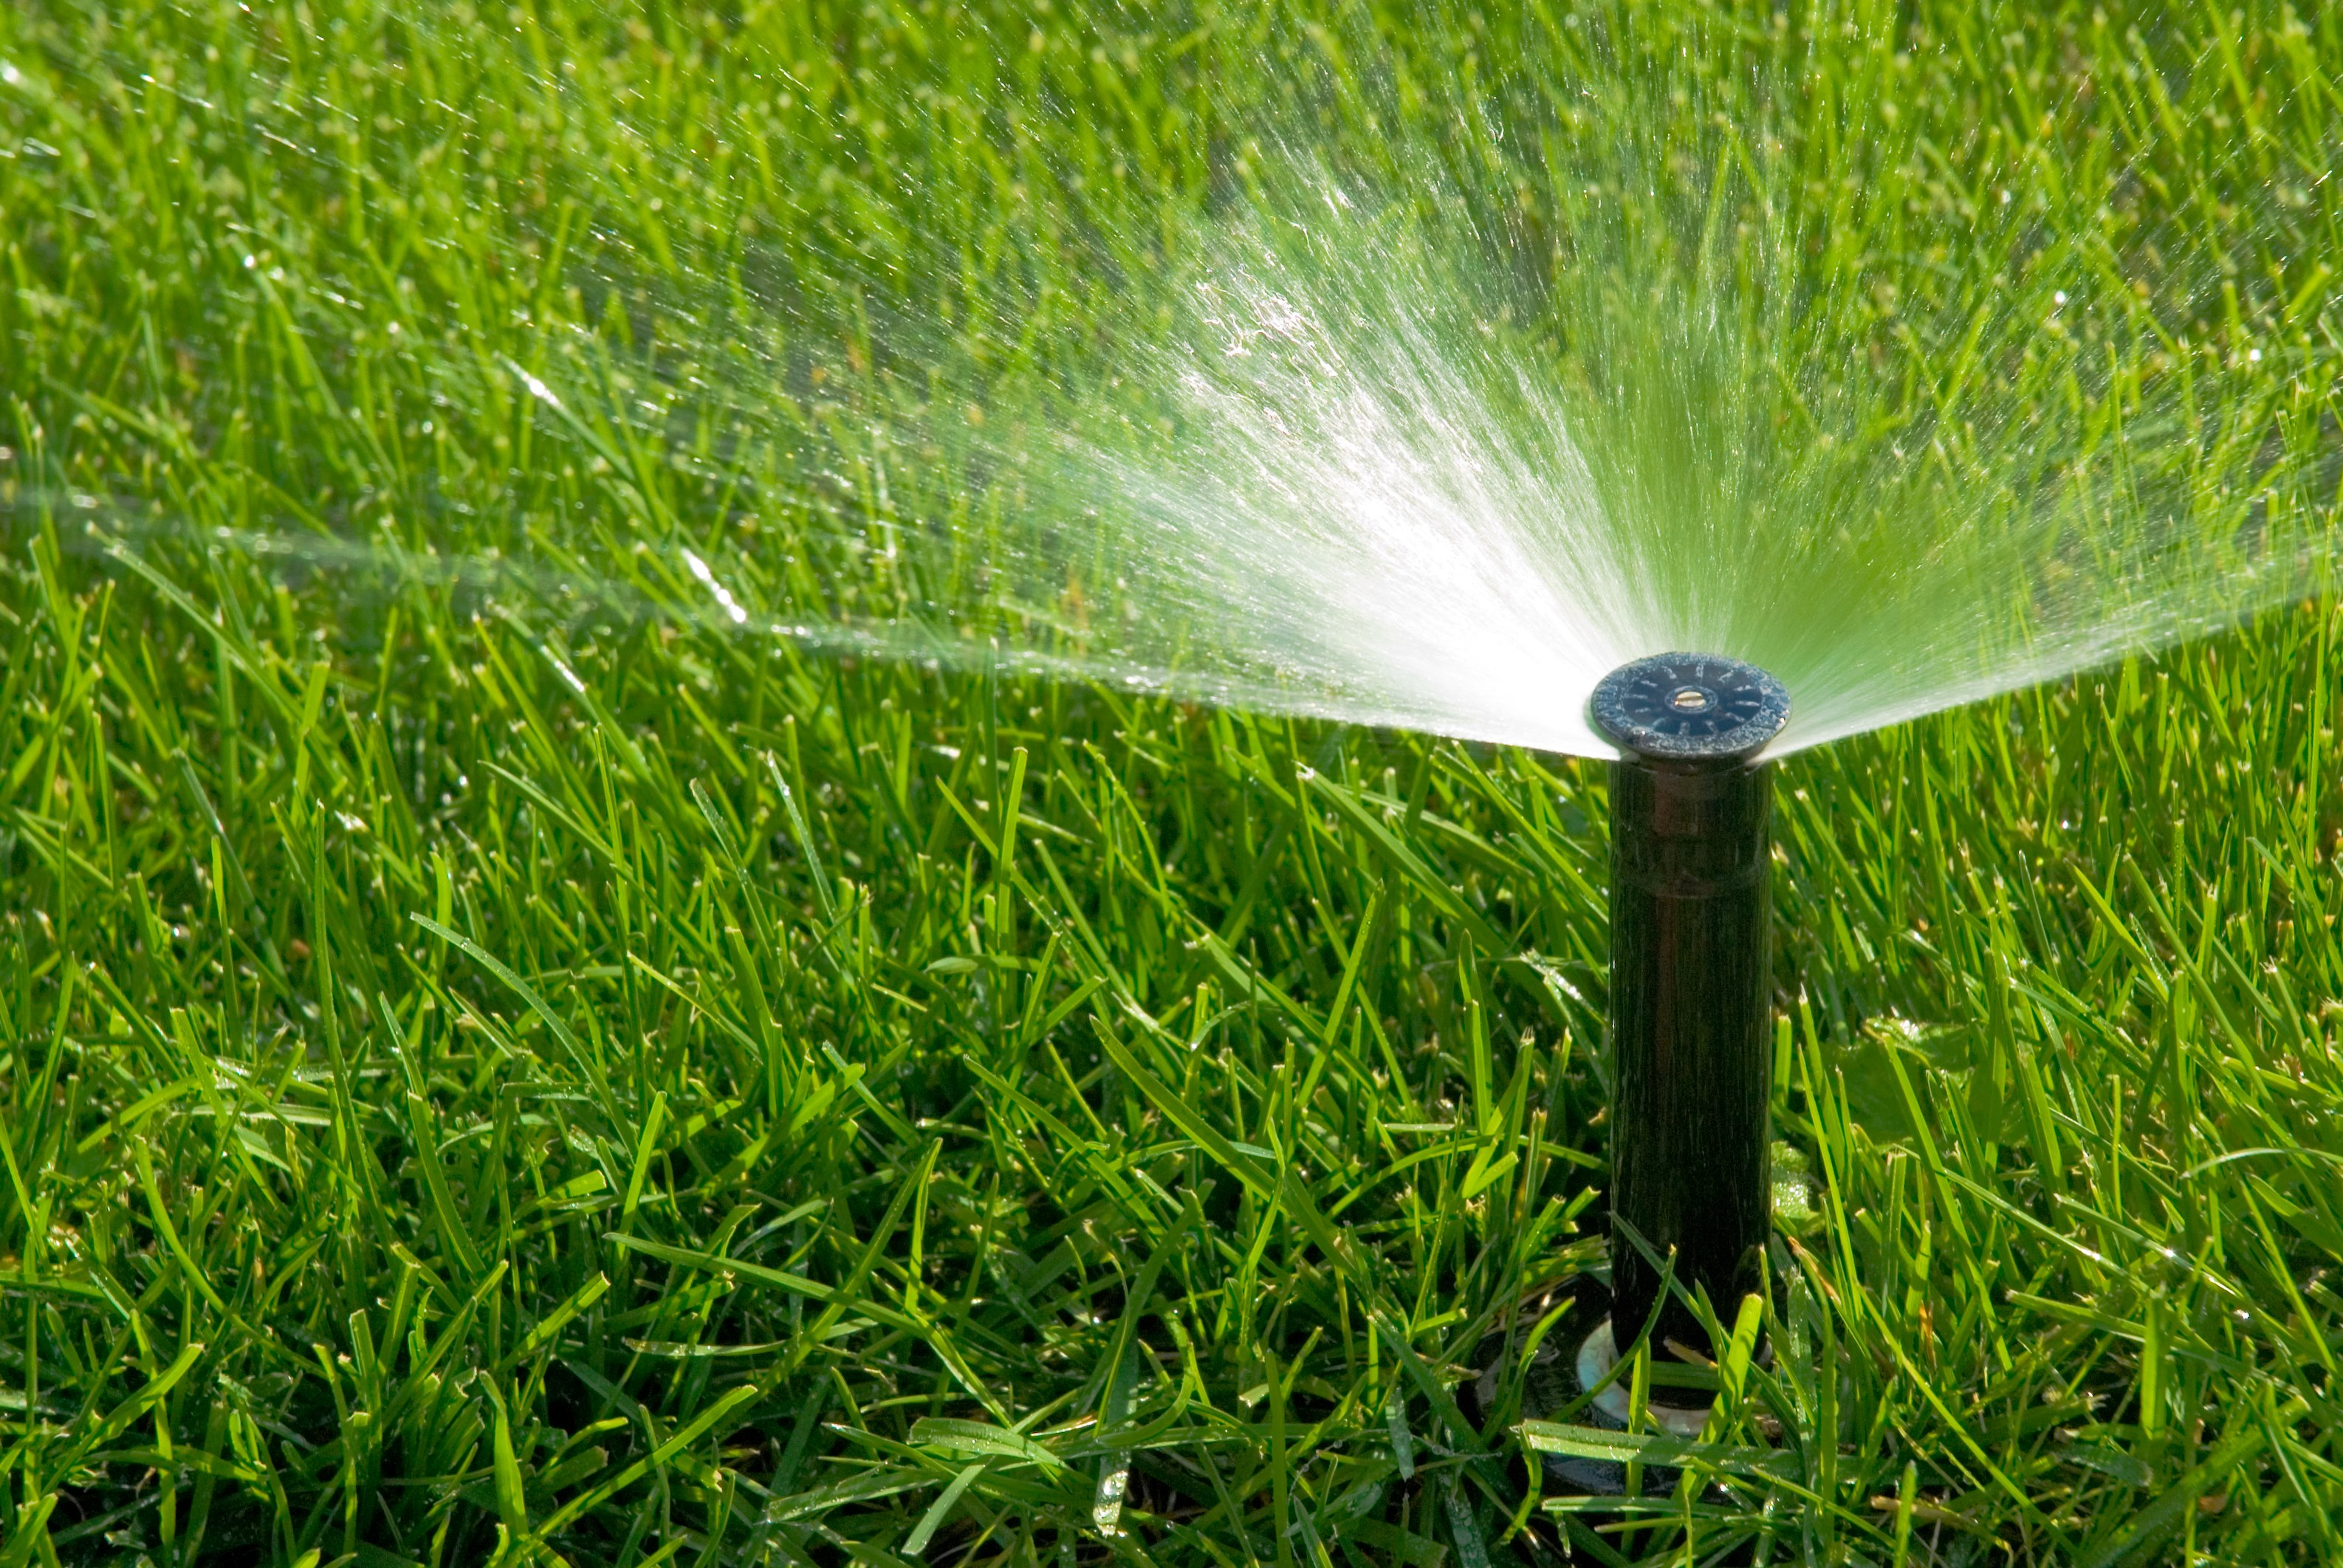 image showing a sprinkler head spraying water correctly